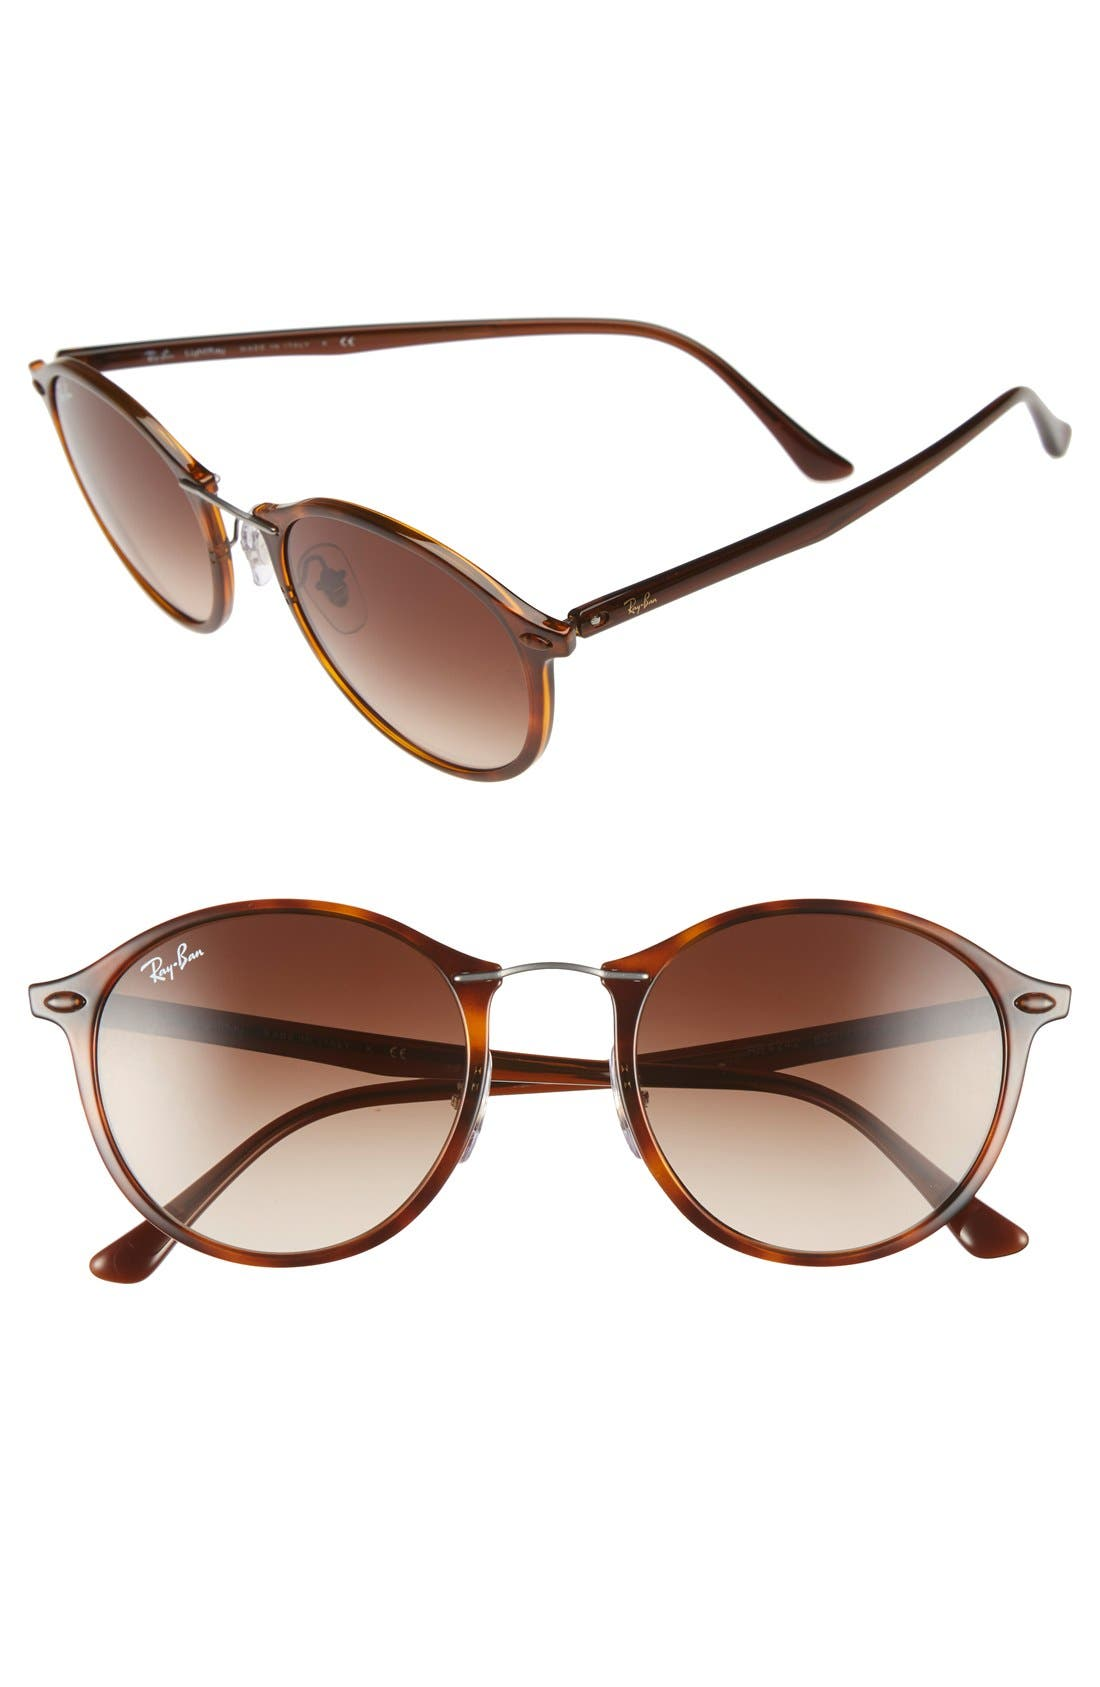 Ray-Ban 49mm Round Sunglasses